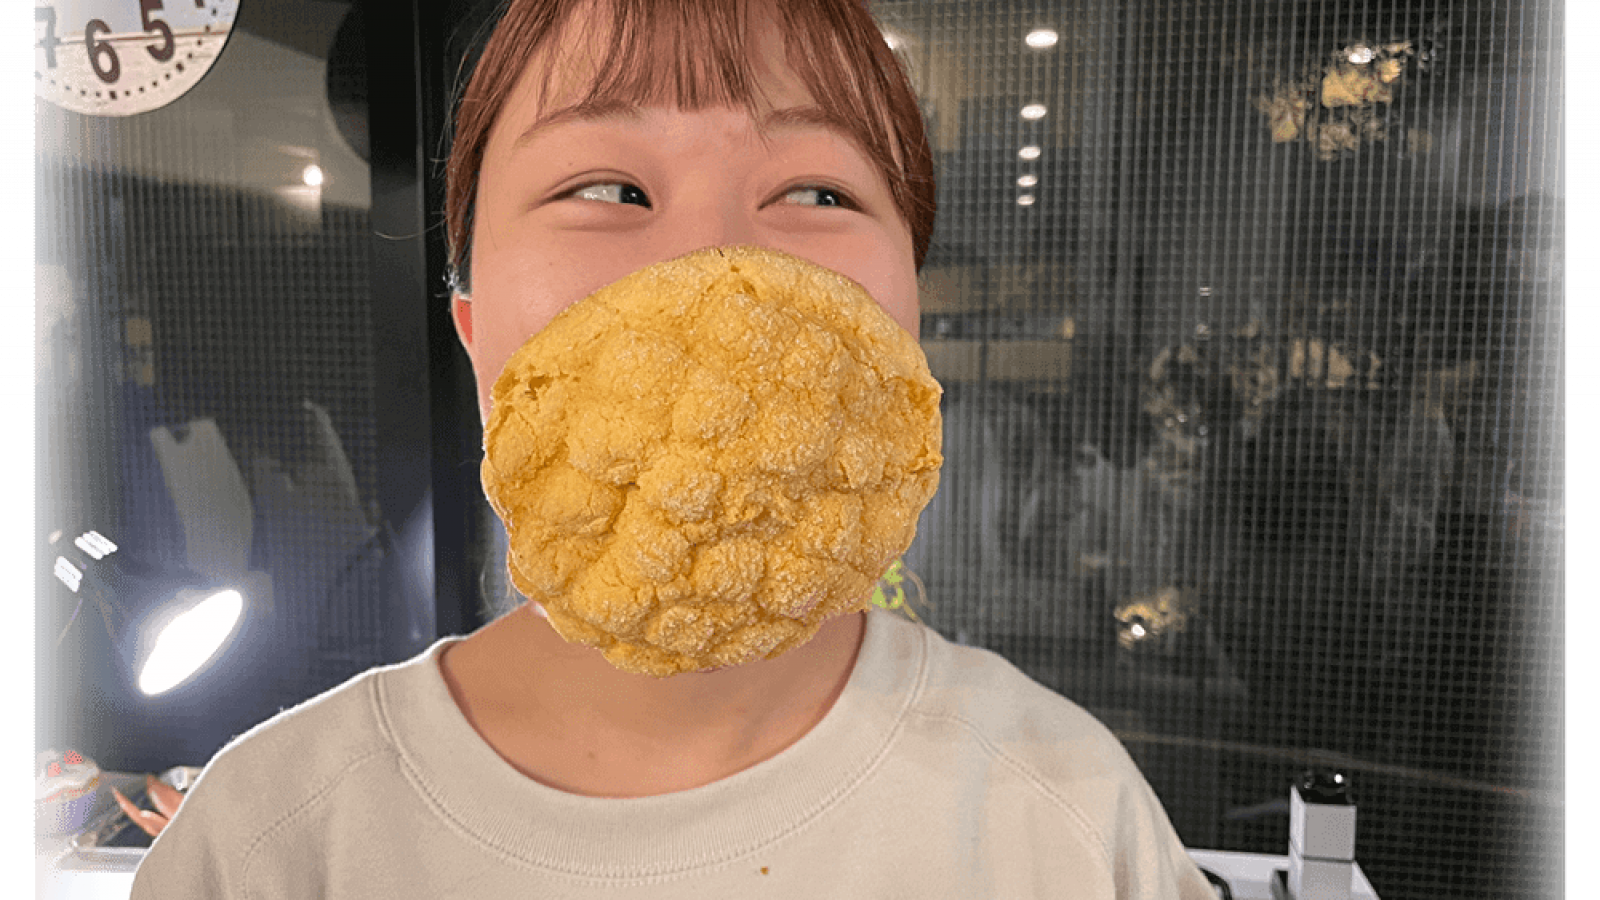 You Can Now Buy an Edible Face Mask Made Out of Bread